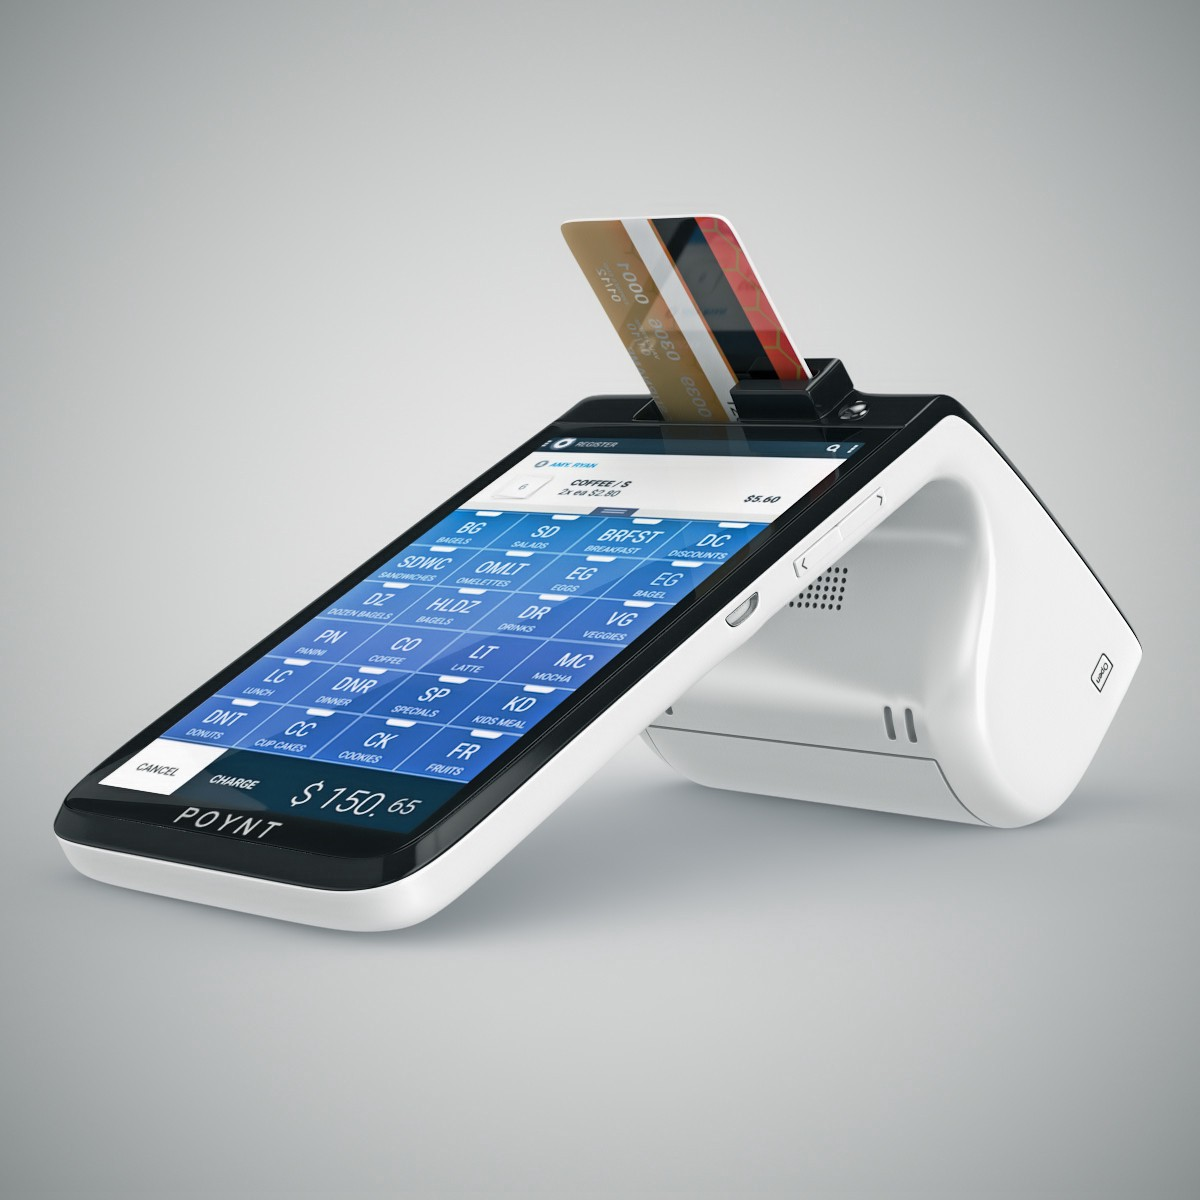 When Tablet Based Cash Register Poynt Will Come To Asia